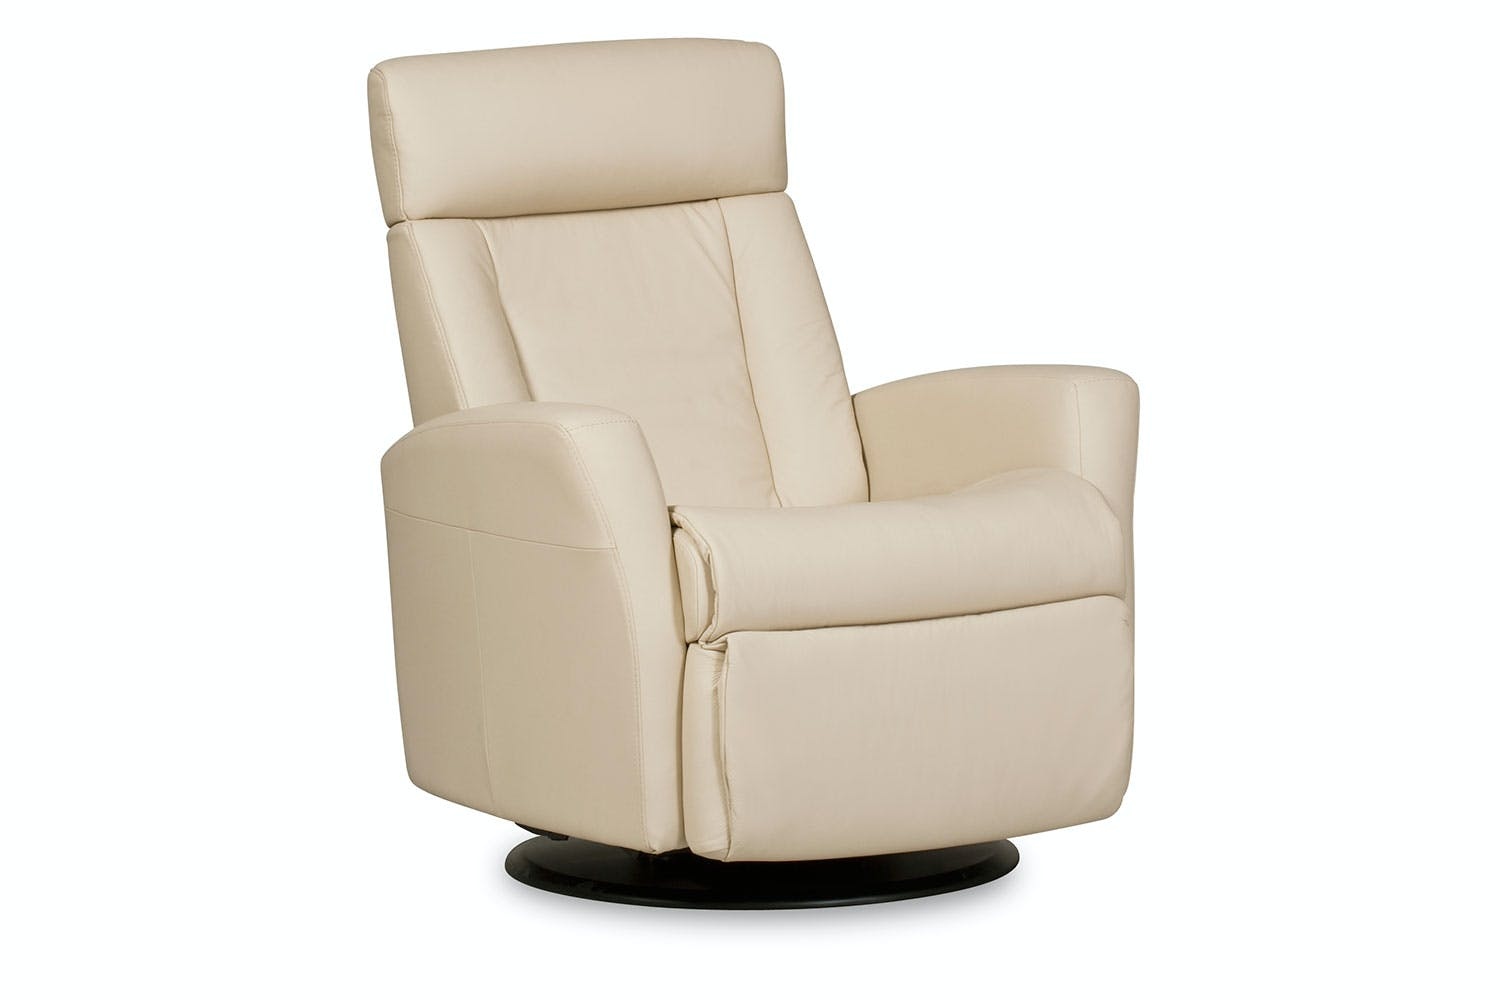 Lotus Recliner Chair Leather Large Trend Img Harvey